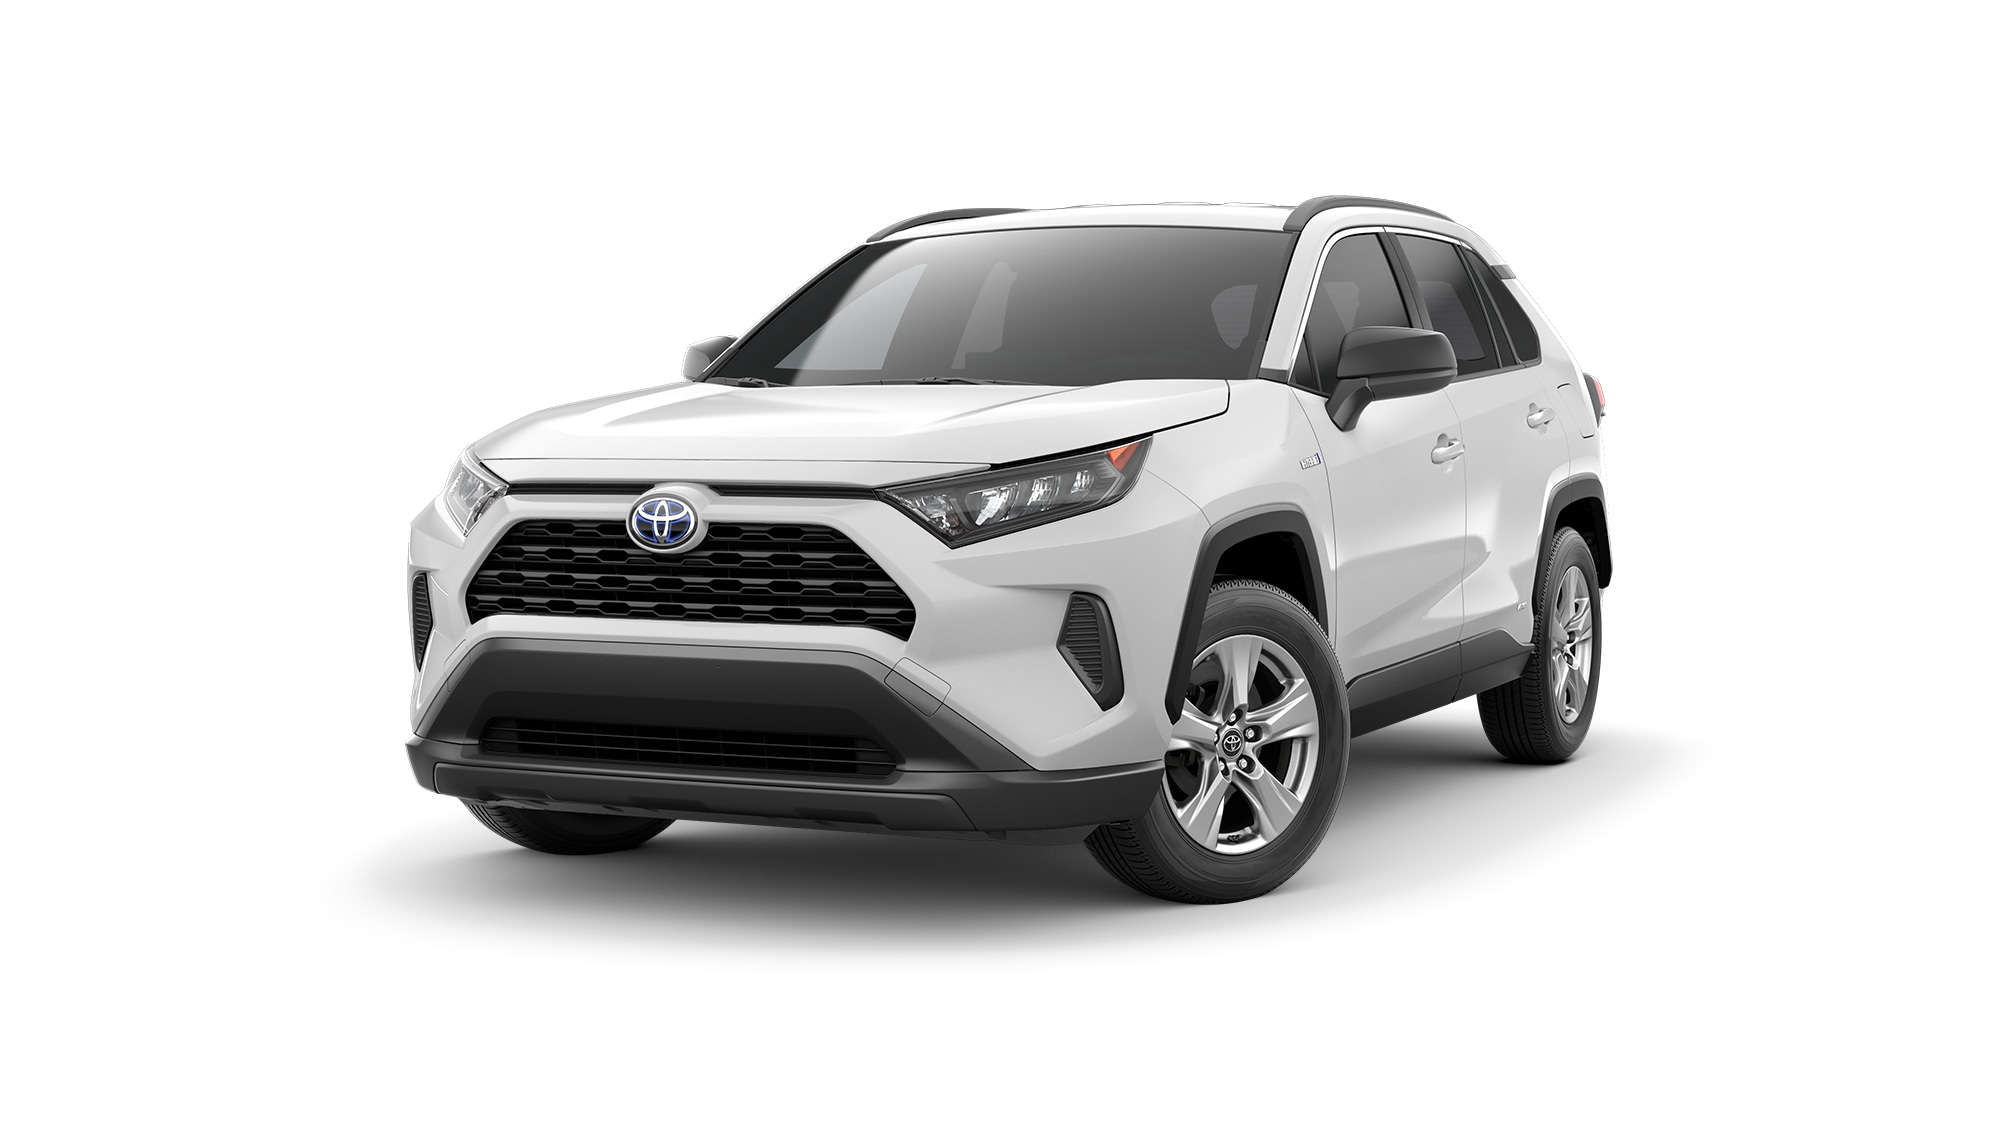 The New Toyota Rav4 Hybrid Is A Green Suv Grieco Toyota